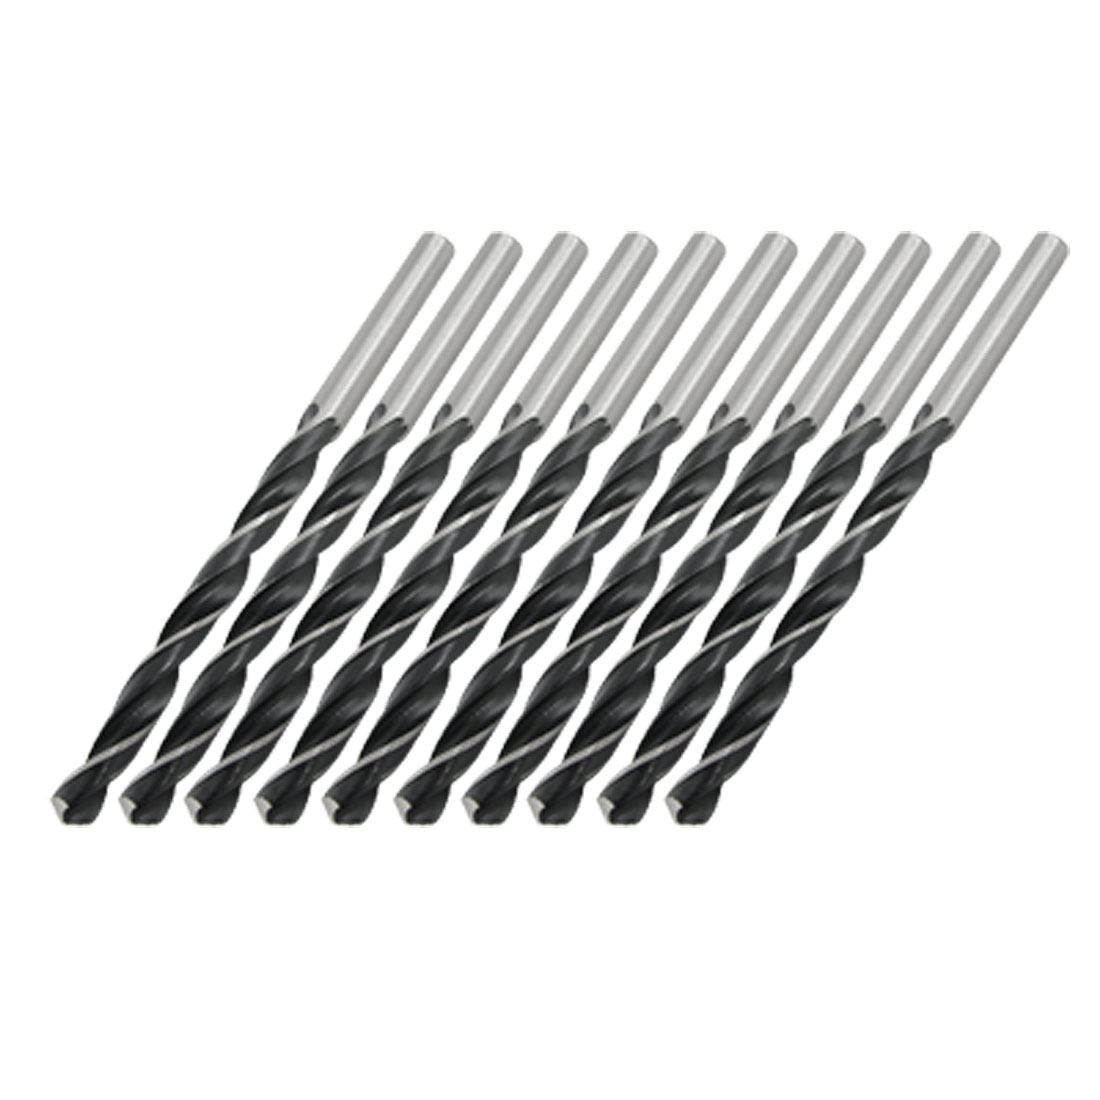 Metal Drilling 5.5mm Dia Straight Twist Drill Bit Gray 10 Pcs